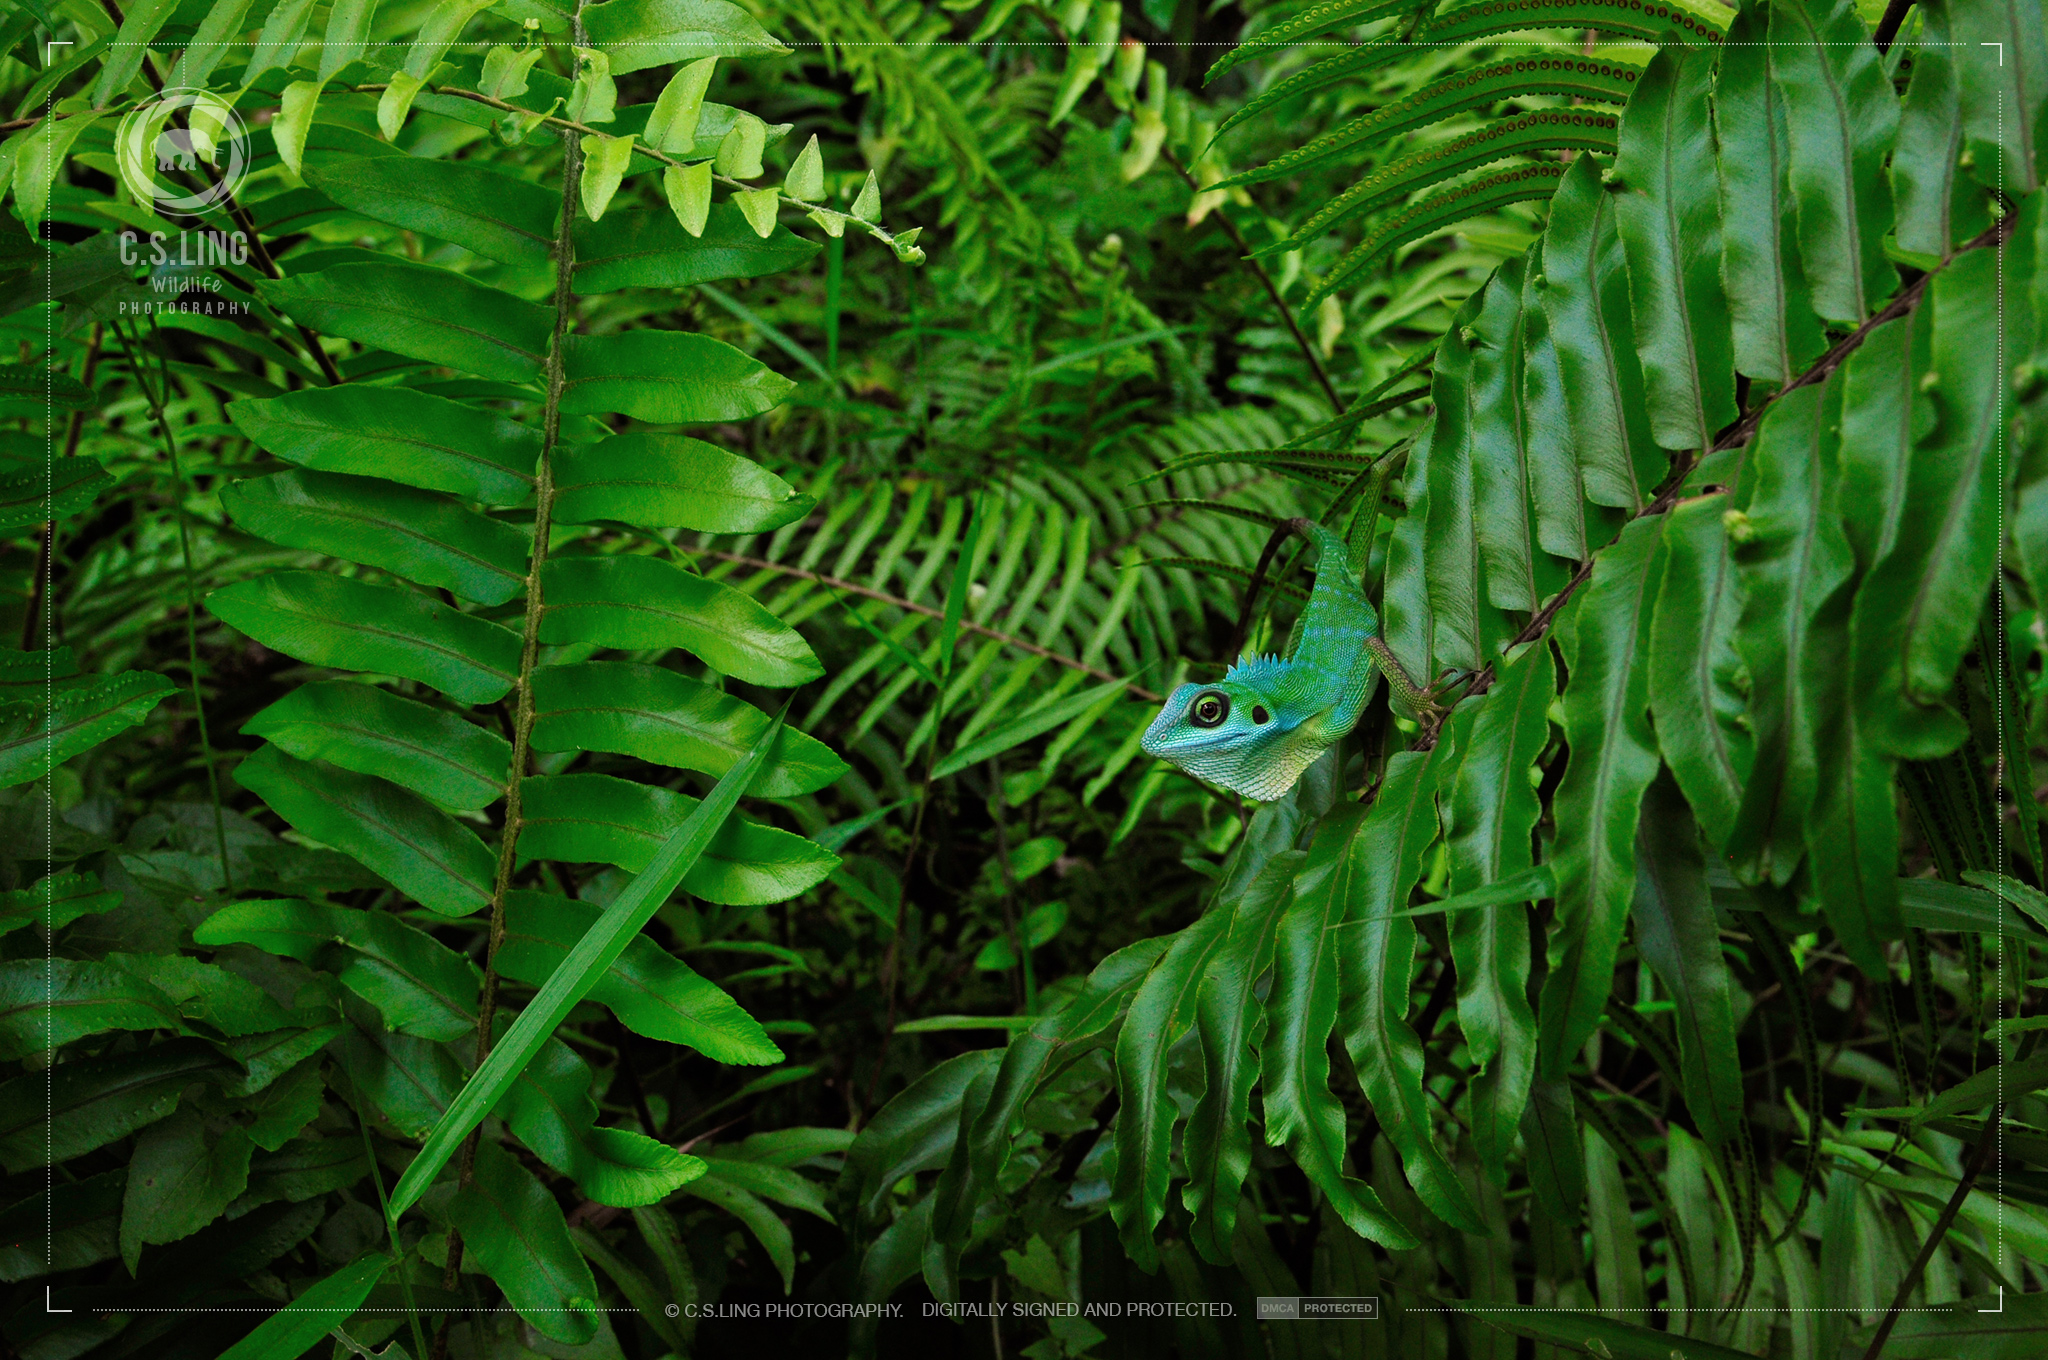 Green-crested Lizard In camouflage | Singapore Wildlife Photographer C.S.Ling